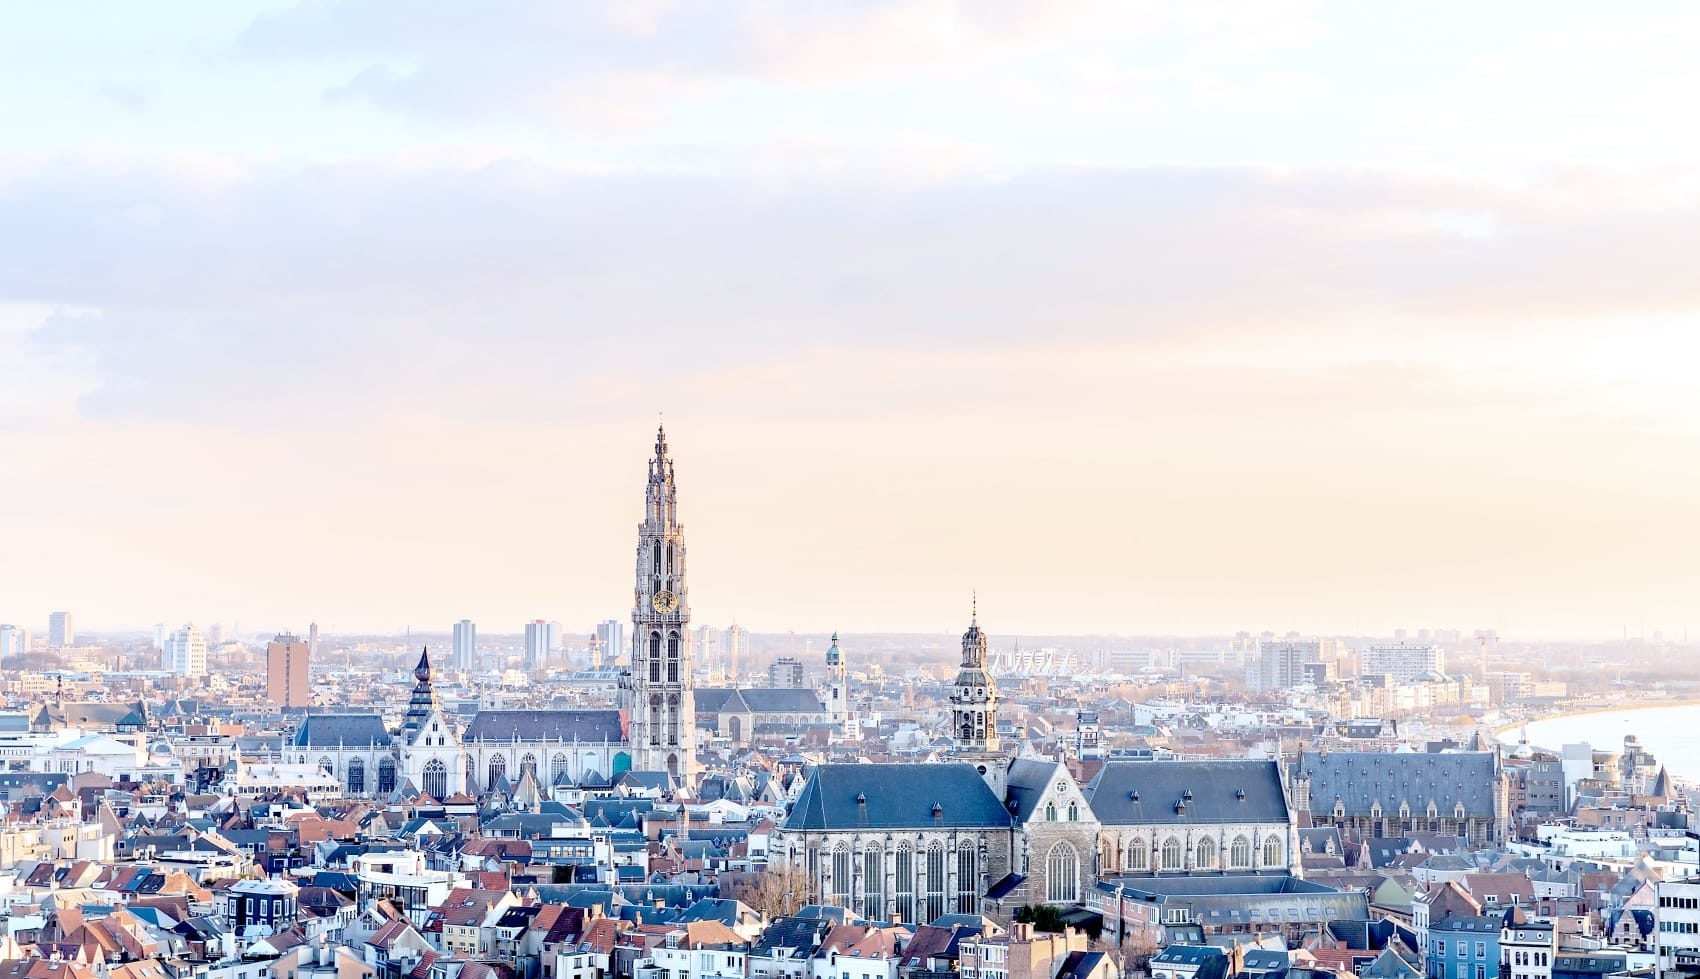 Stad Antwerpen - Bringing the social economy to LinkedIn